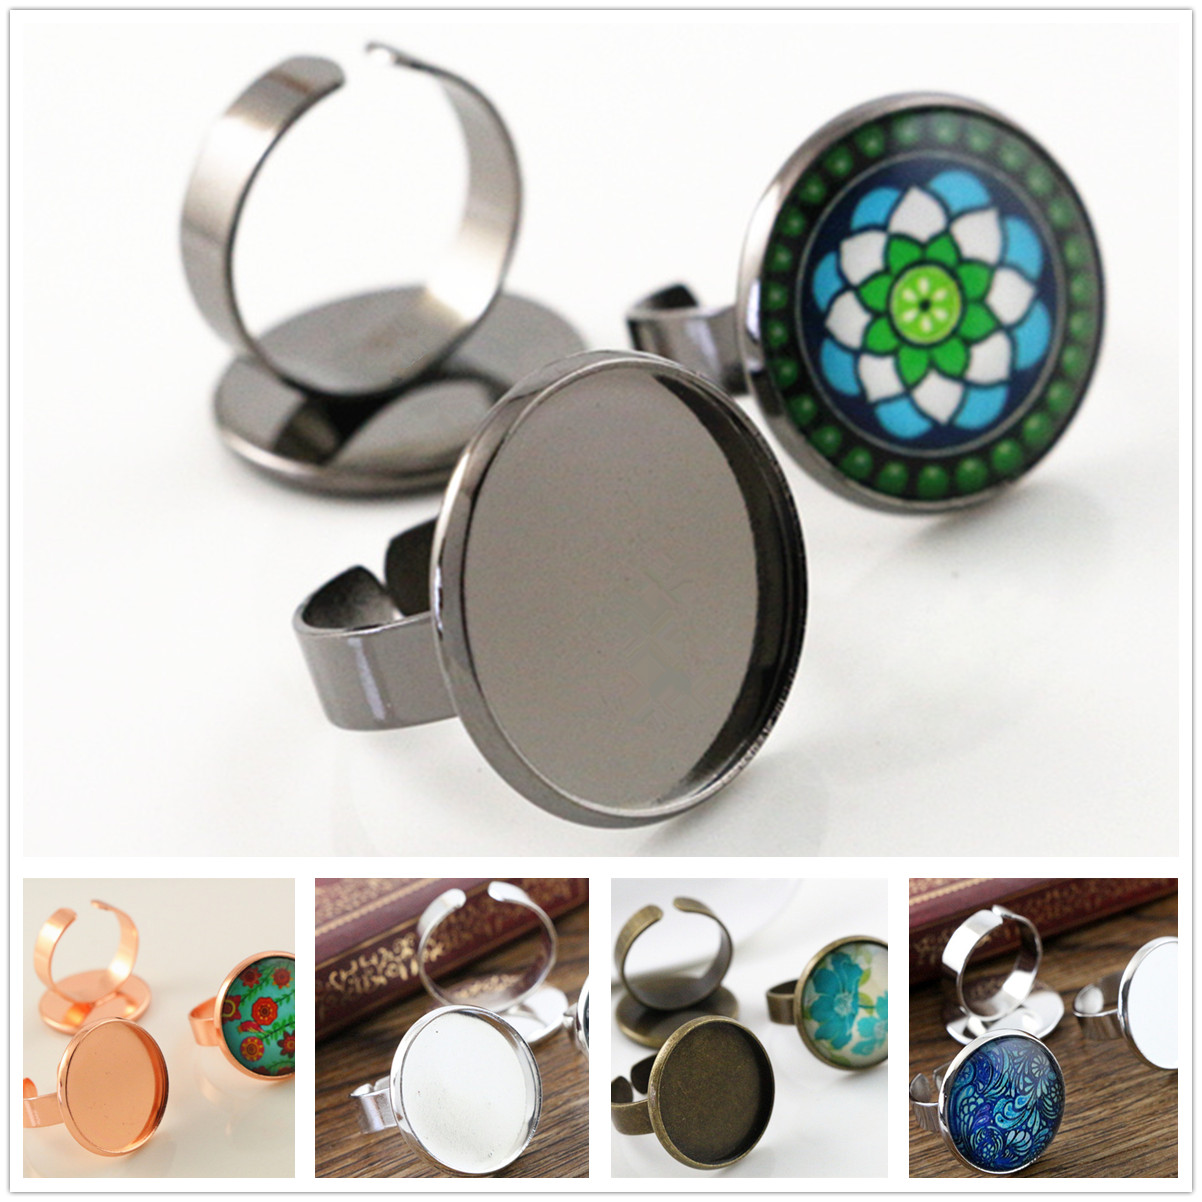 20mm 5pcs/Lot Classic 6 Colors Plated Brass Adjustable Ring Settings Blank/Base,Fit 20mm Glass Cabochons,Buttons;Ring Bezels 18x25mm 5pcs light silver and bronze plated brass drop adjustable ring settings blank base fit 18x25mm glass cabochons